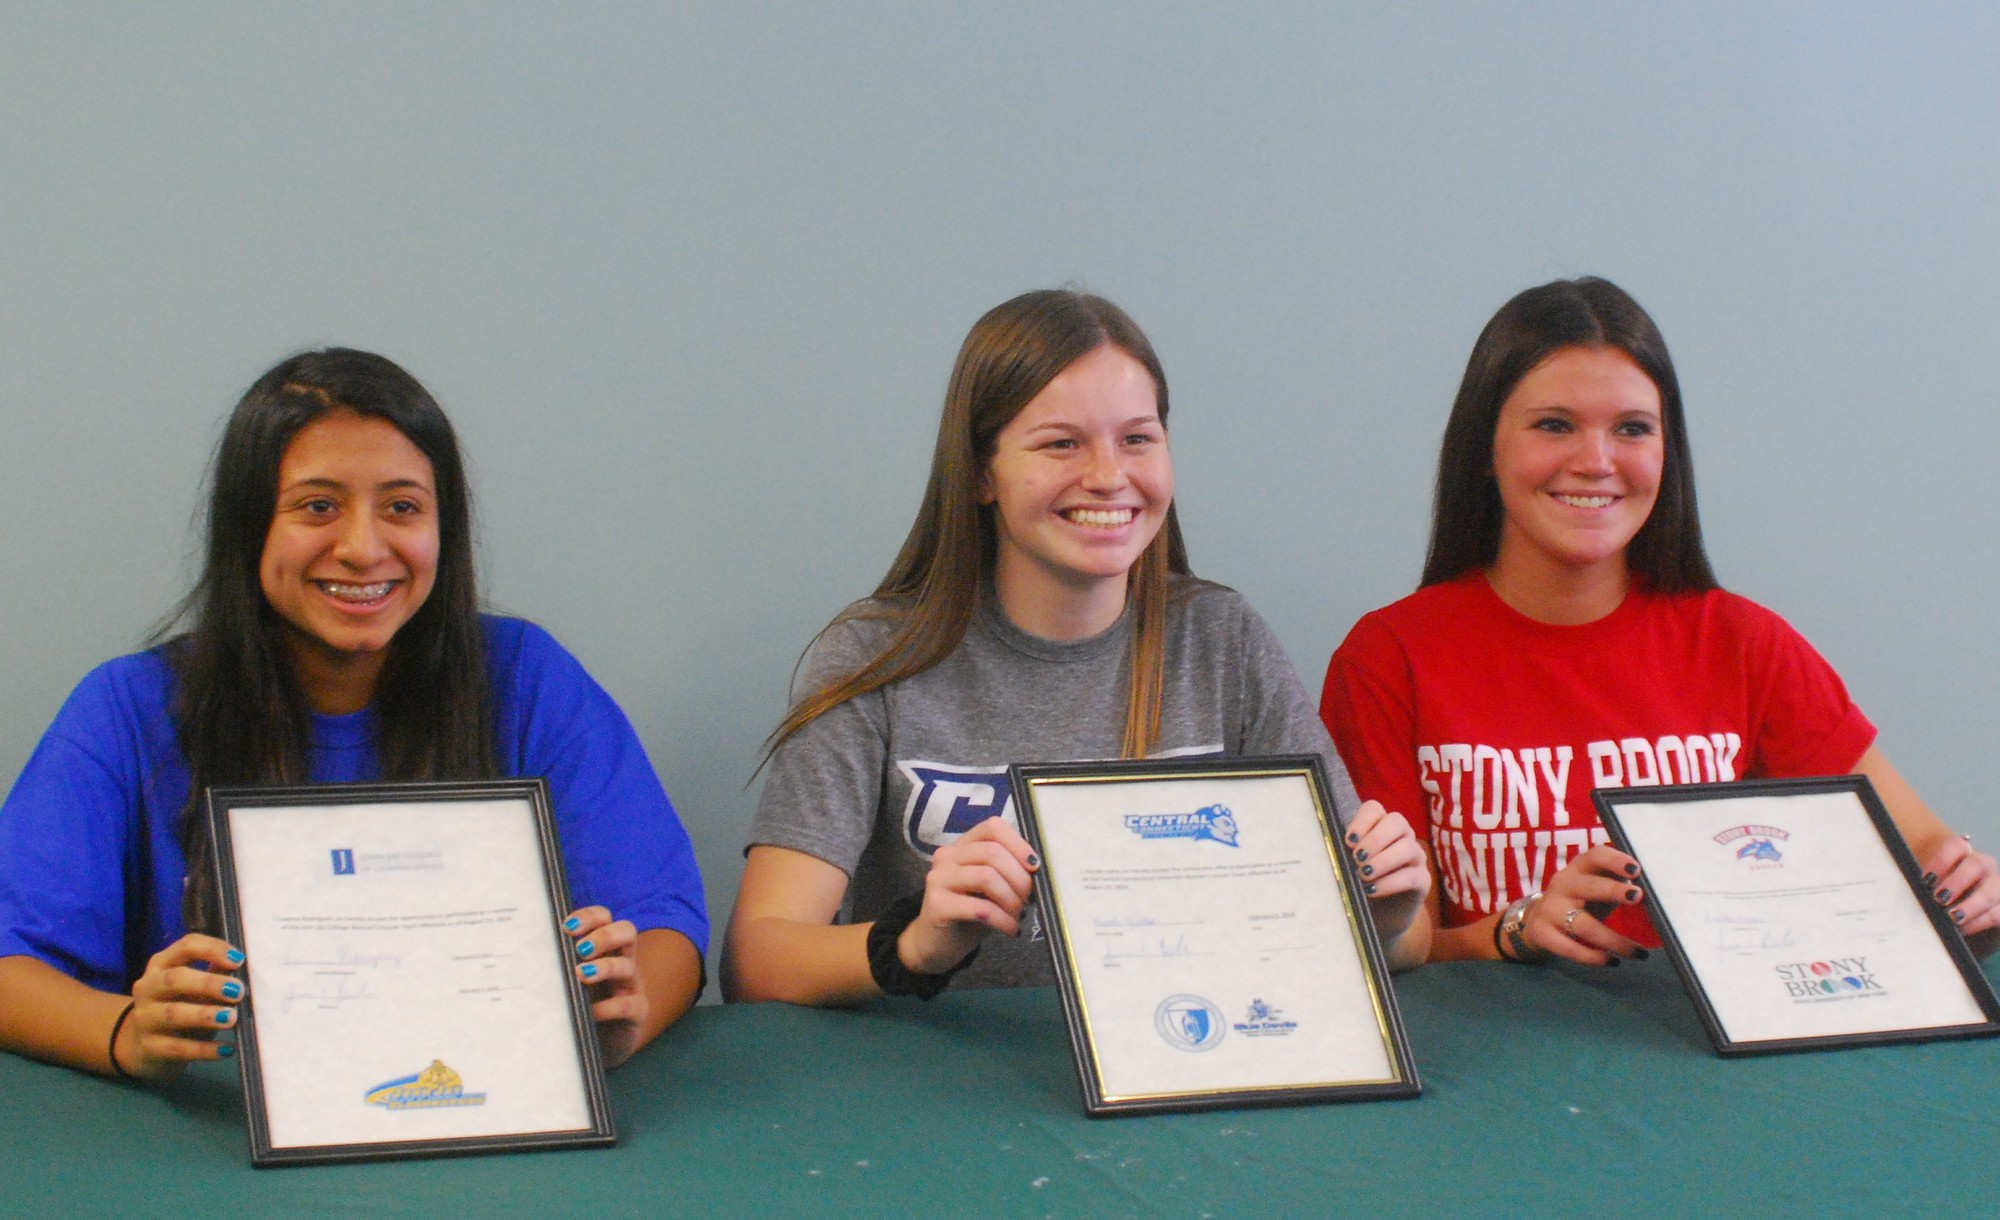 Kennedy soccer players, from left, Leanna Rodriguez, Nicole Liotta and Franki Priore committed to playing college ball next fall during a signing ceremony at Kennedy on Feb. 5, which was National Signing Day.